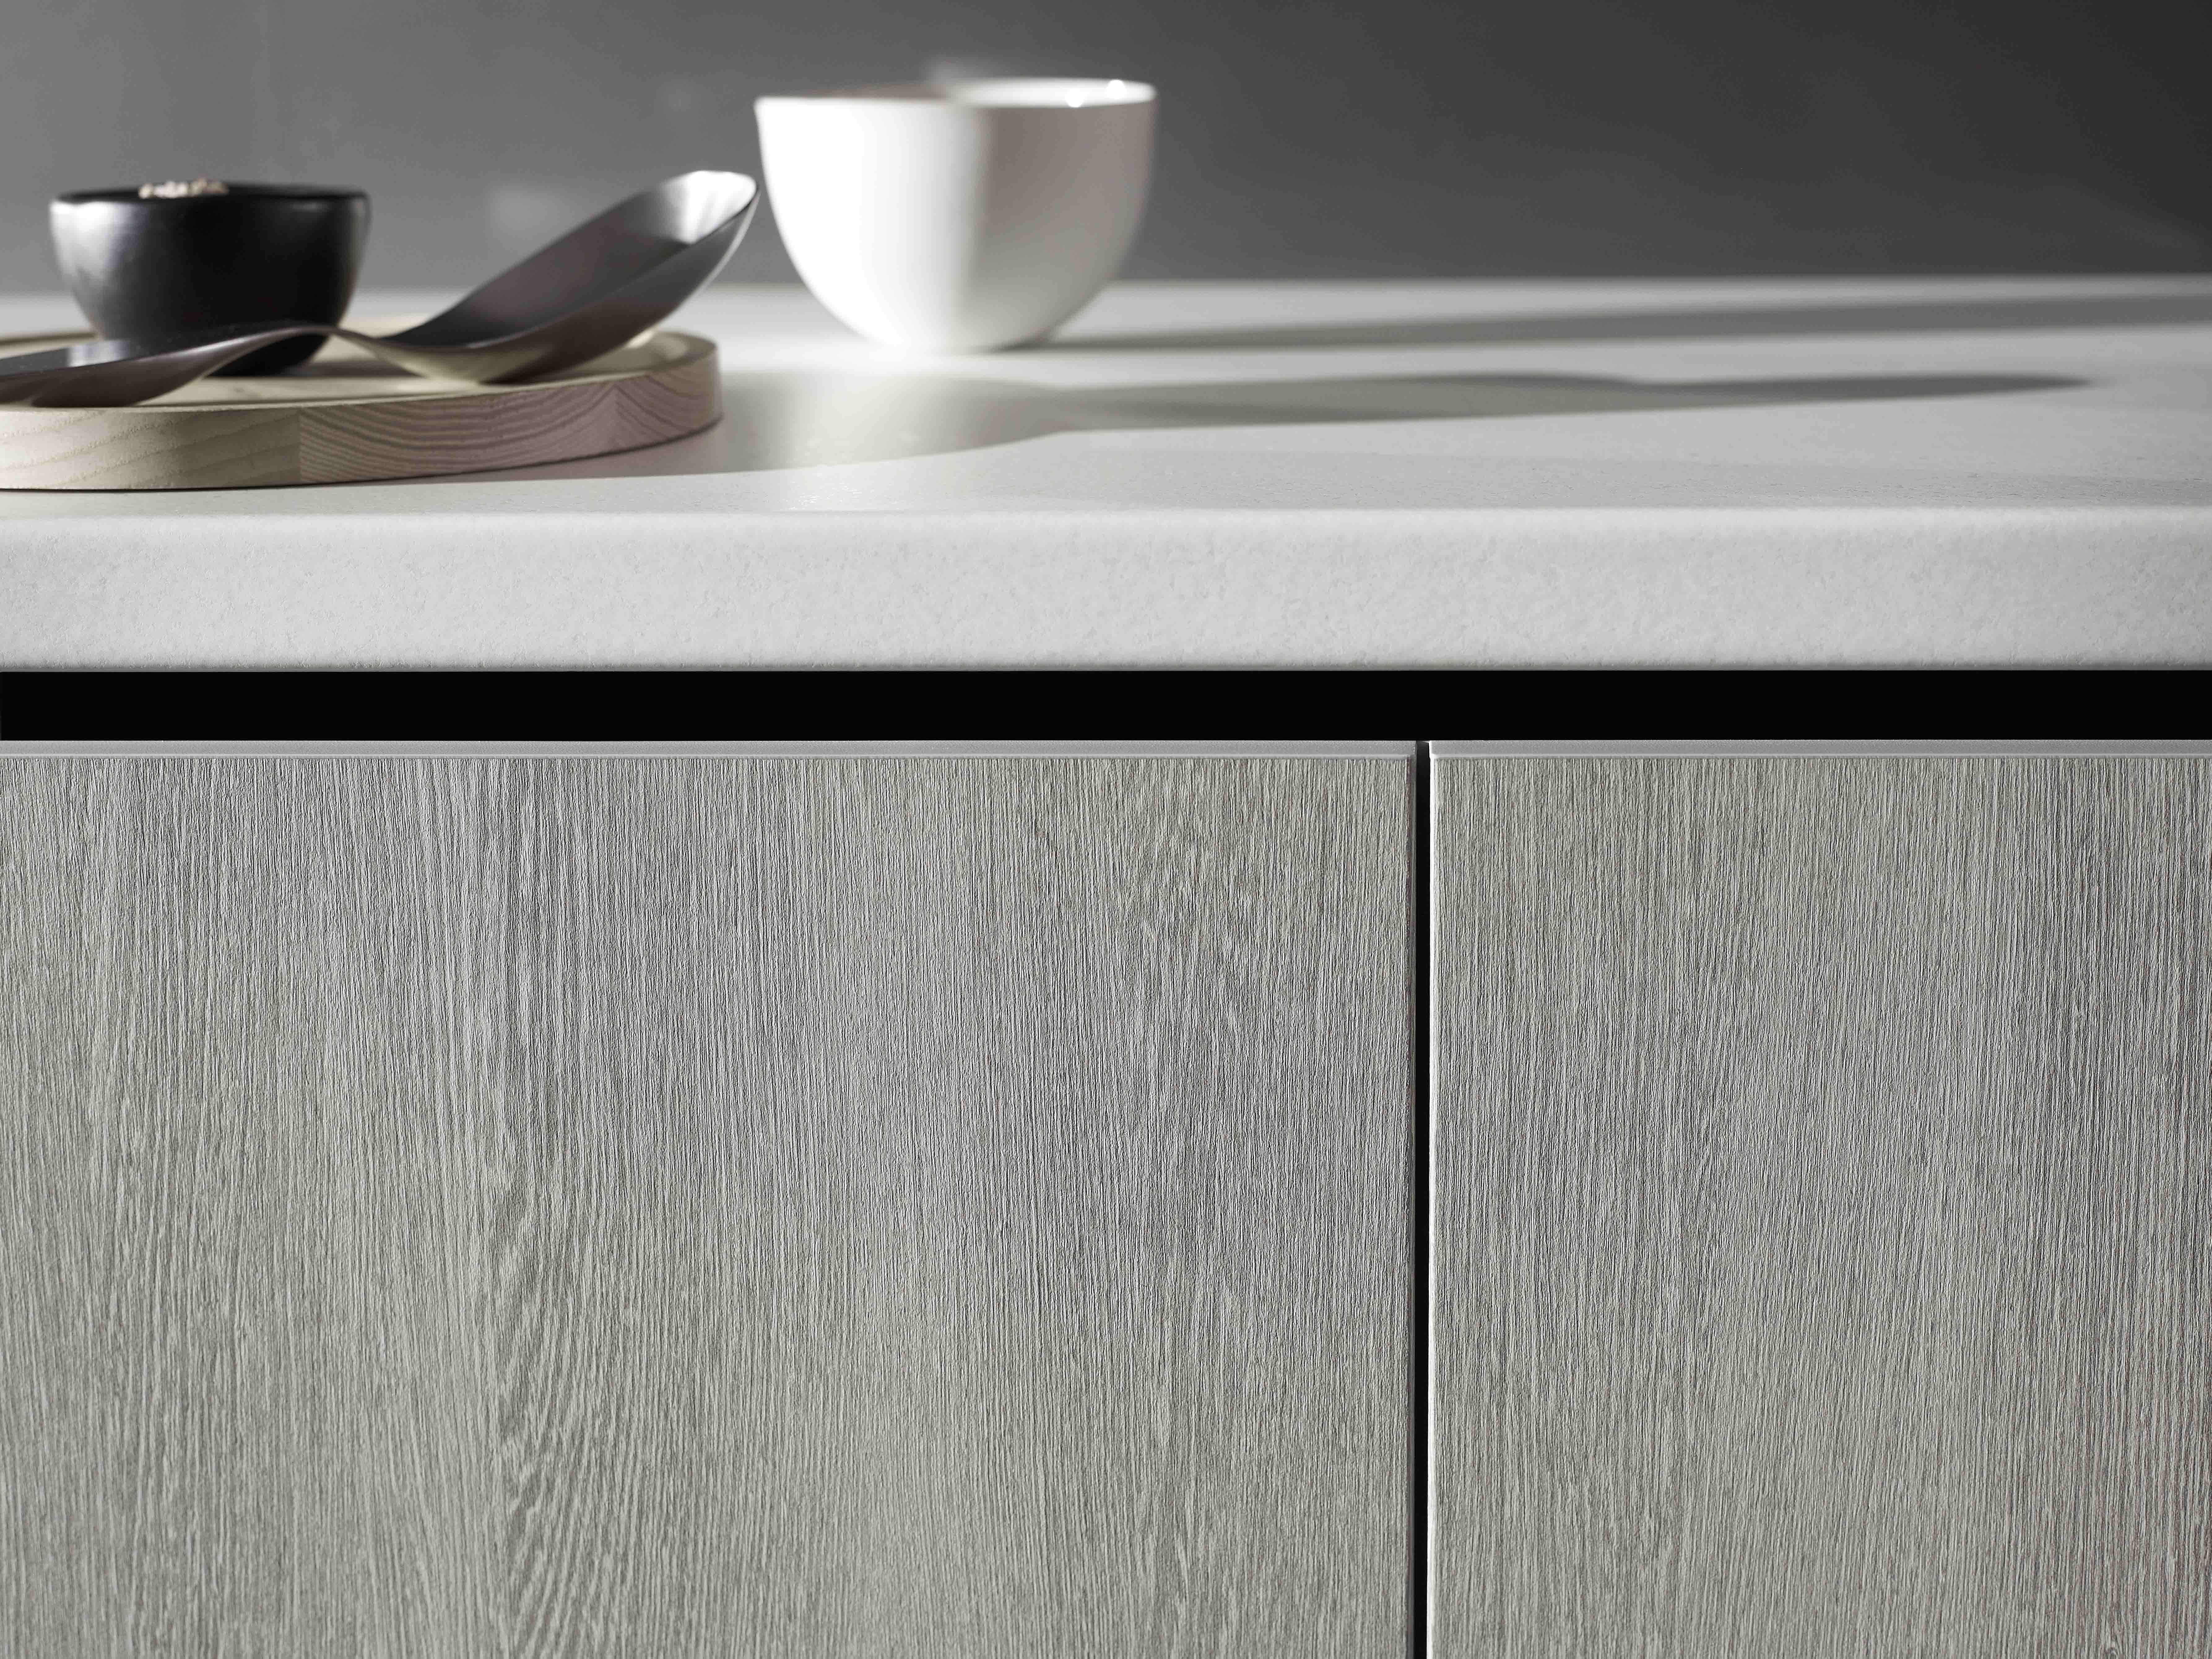 Benchtop Laminex Impressions Fresh Snow Spark finish and base cupboard doors and panels Laminex Impressions Bleached Wenge Riven finish. & Benchtop Laminex Impressions Fresh Snow Spark finish and base ...